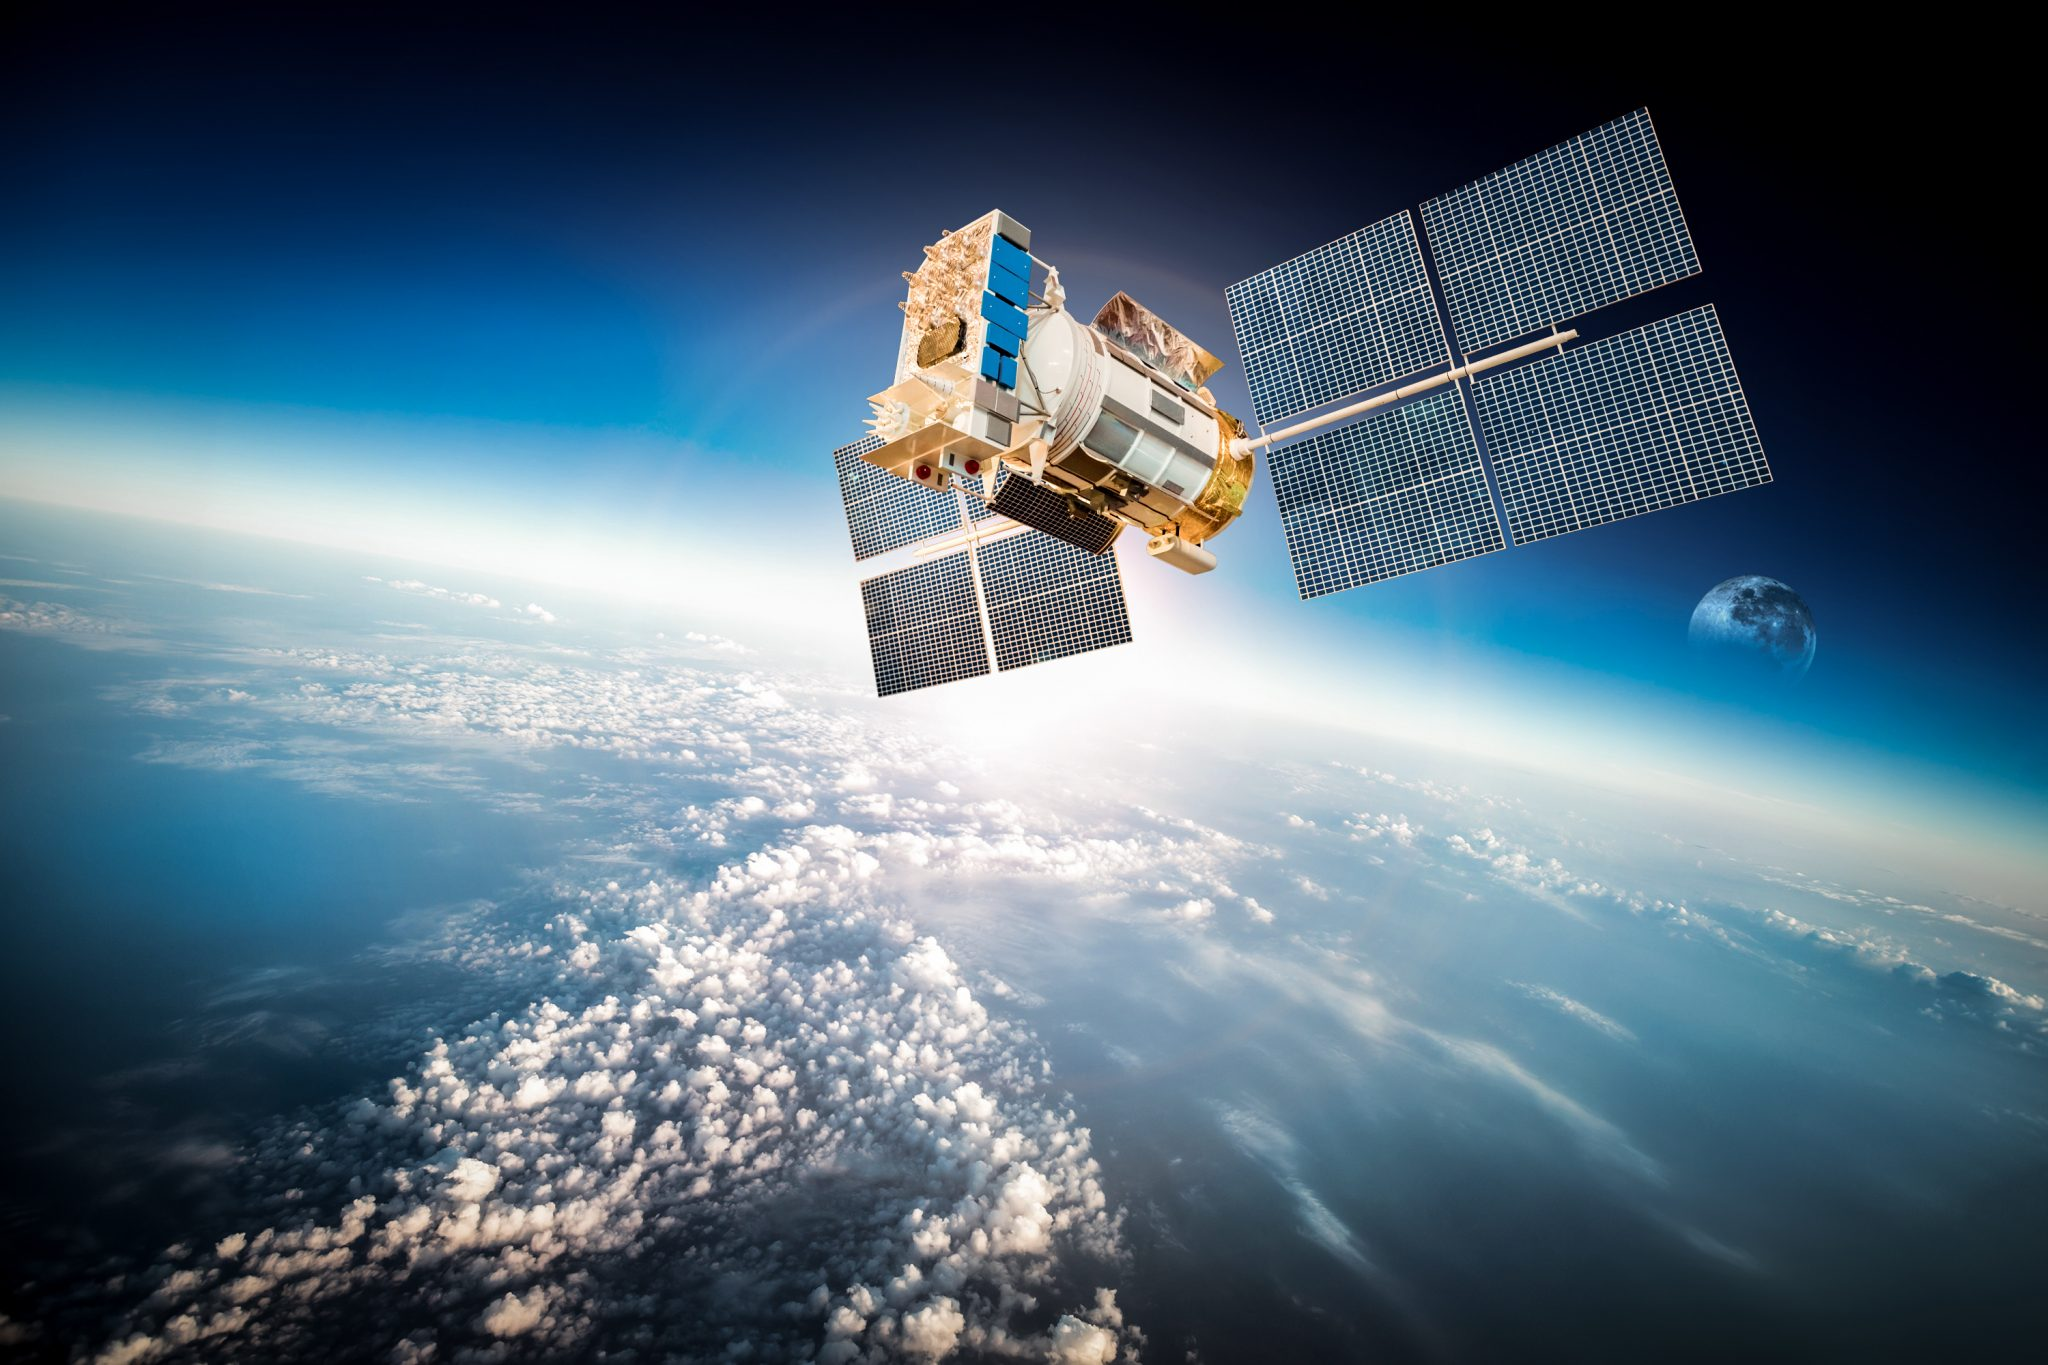 Competition in Space Leads to Technology Development